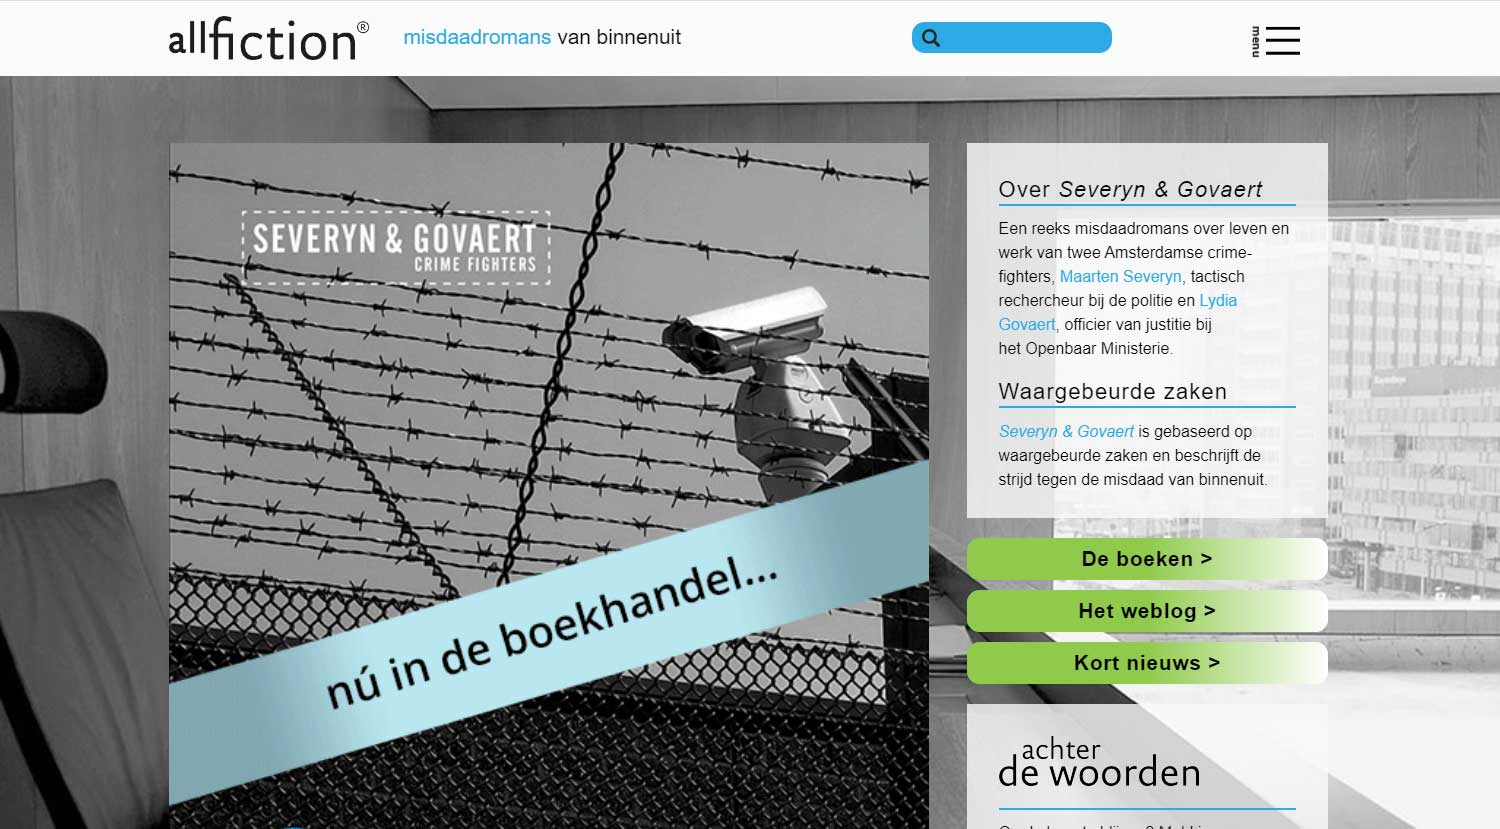 allfiction.nl